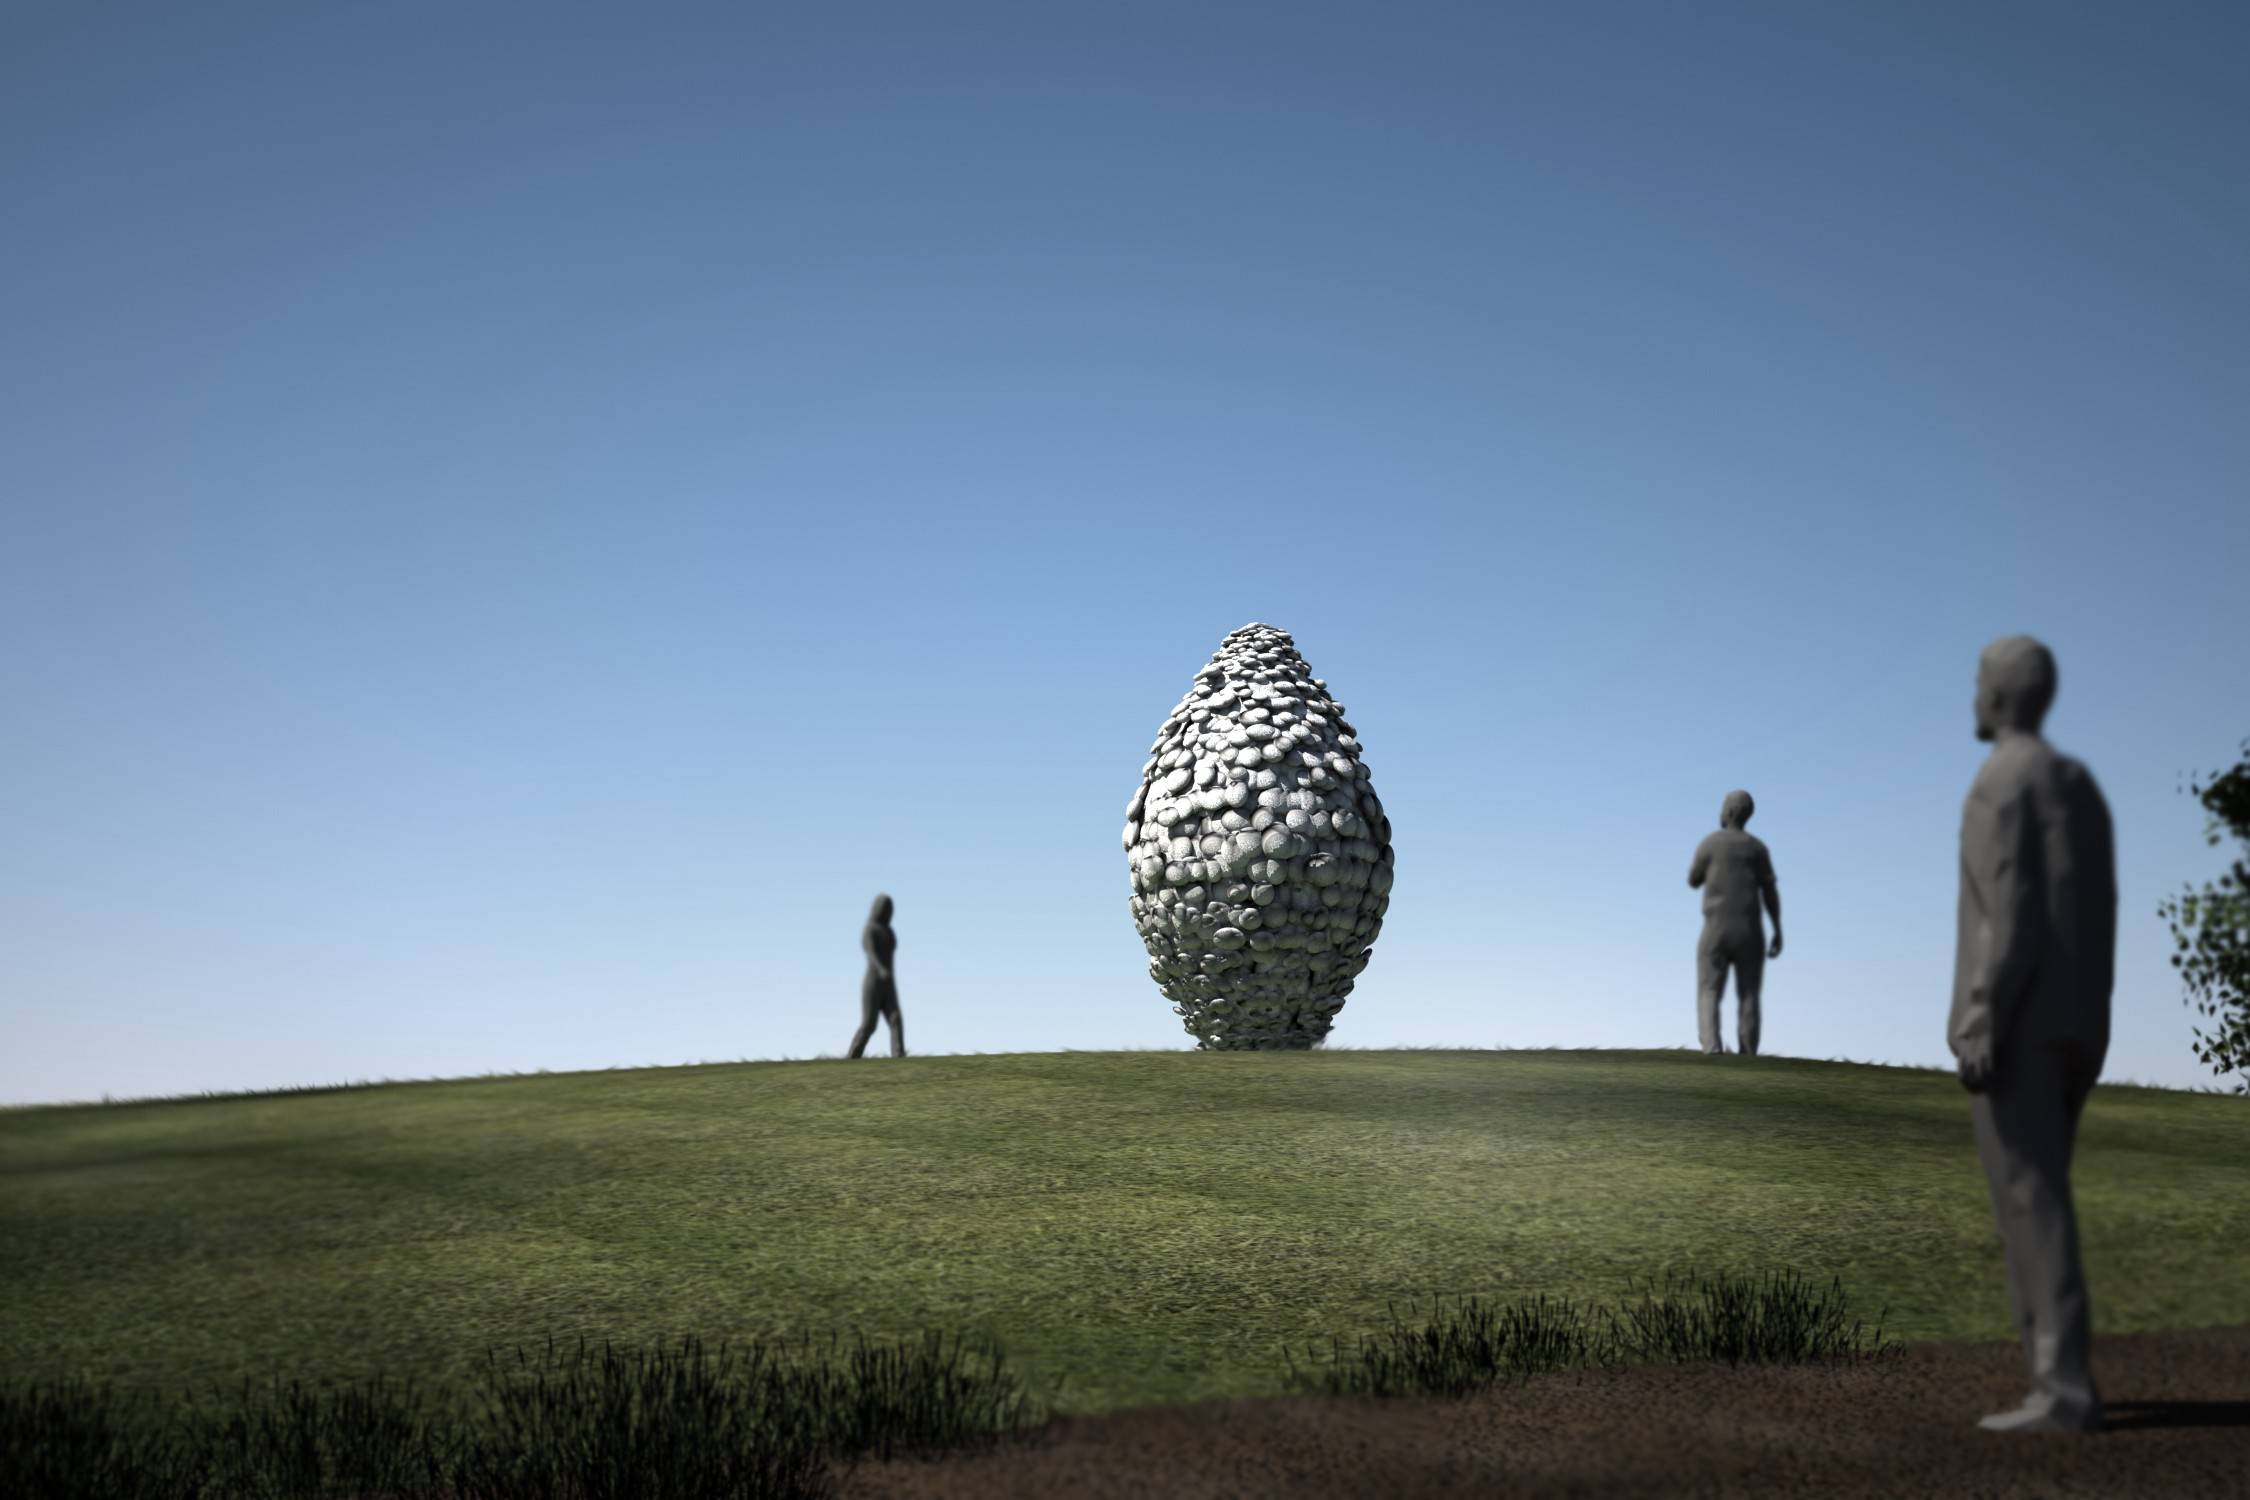 Mira Calix Proves That Nothing Is Set In Stone With New Project For London's Cultural Olympiad